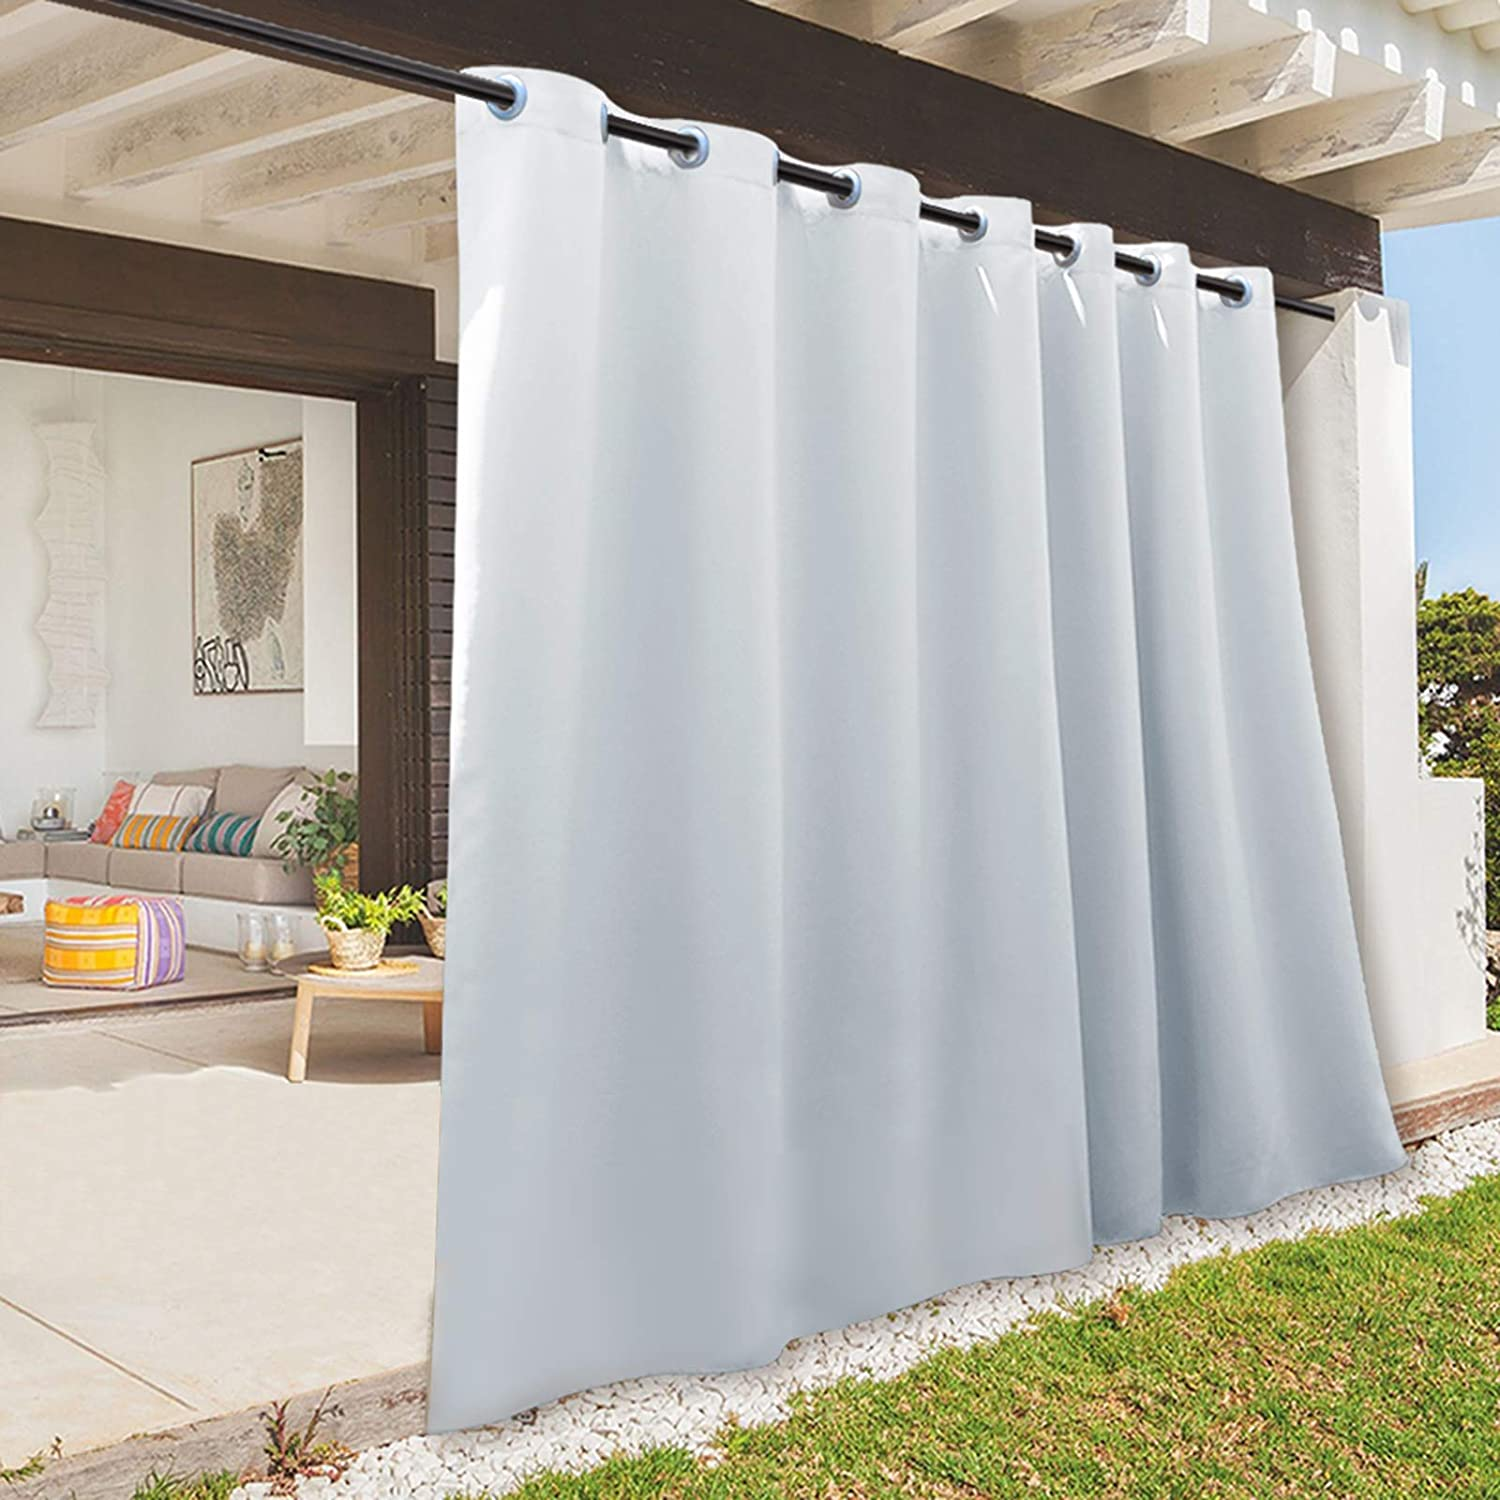 RYB HOME 108 inches Long Outdoor Curtains Plus Long Porch Curtains Outdoor Waterproof Drape for Gazebo / Cabana / Lounge / Pergola Deck, 100-inch x 108 inches, 1 Panel, Grayish White